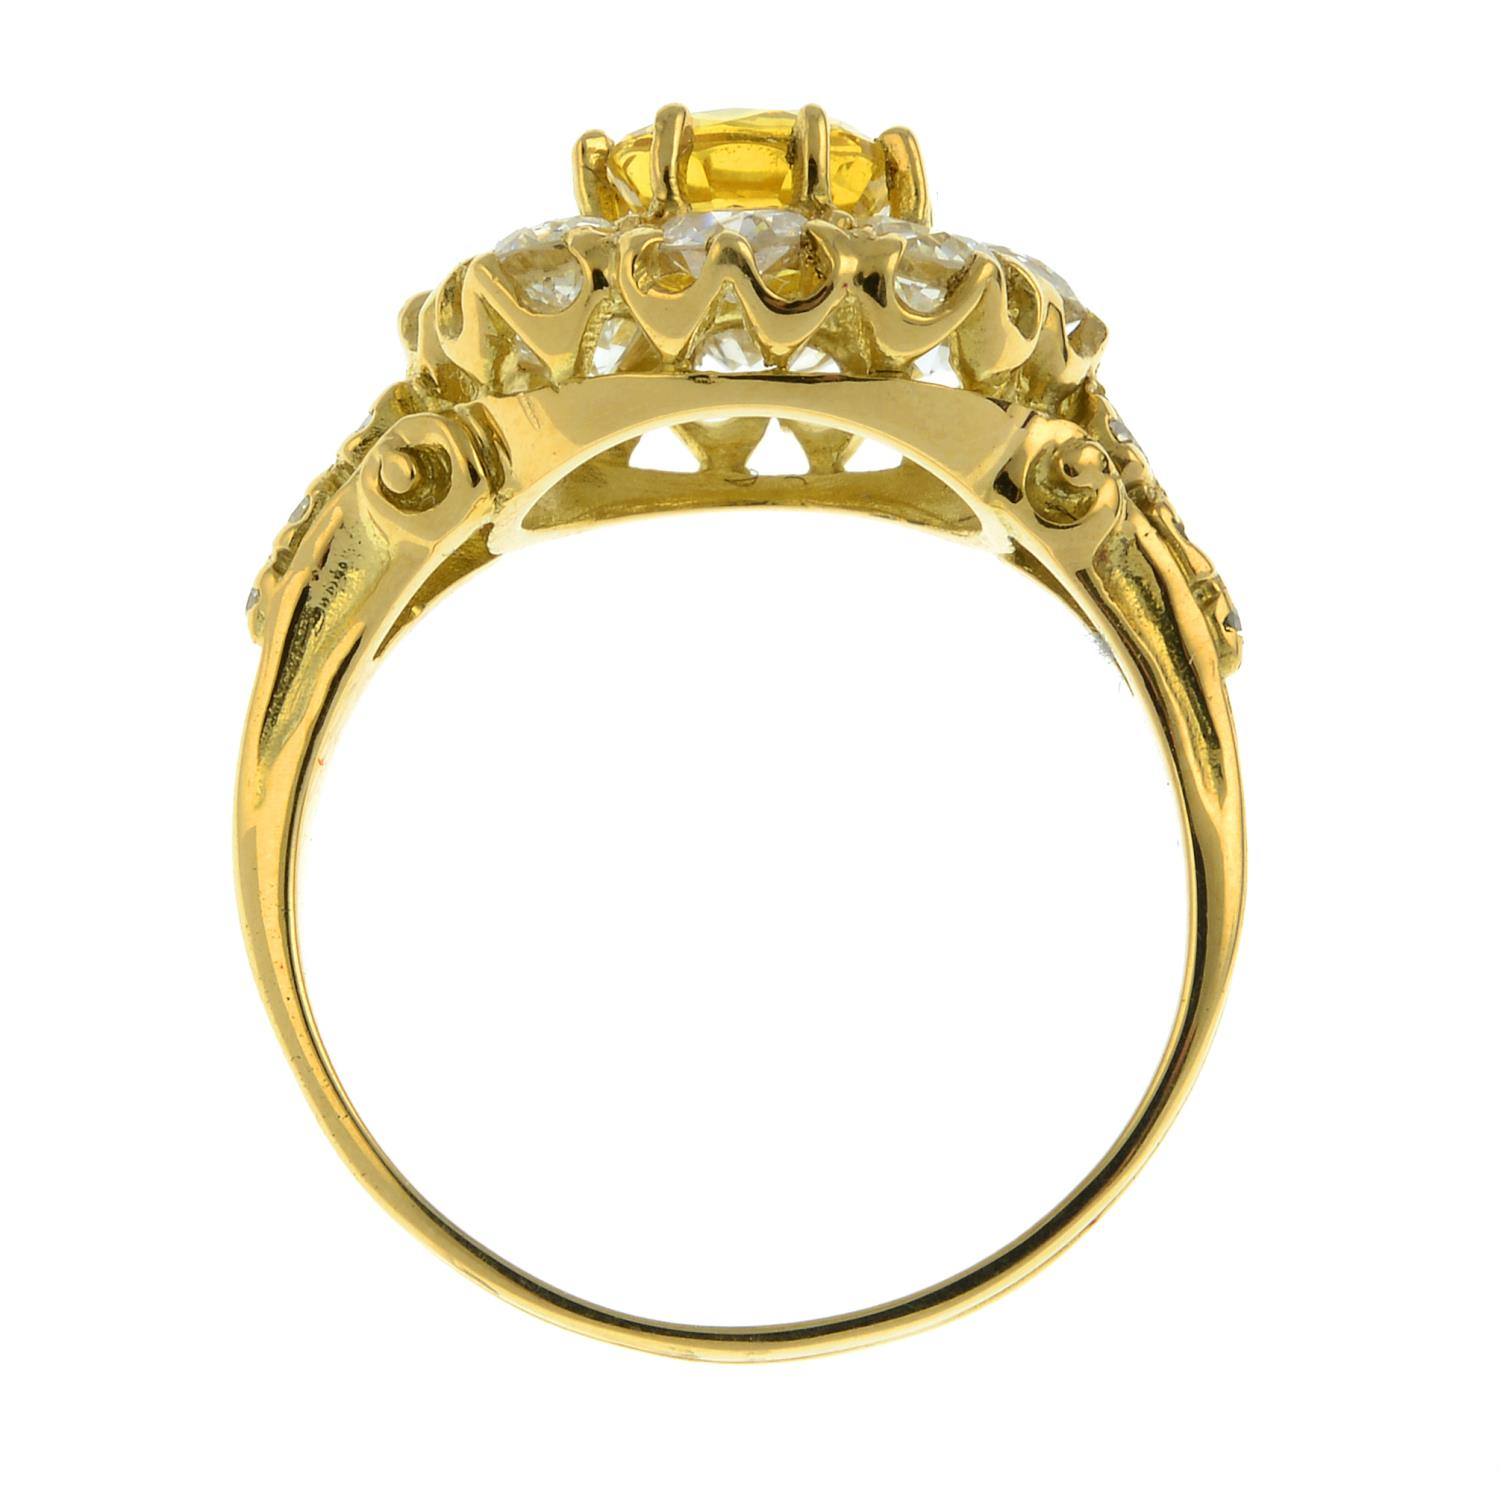 A yellow sapphire and old-cut diamond cluster ring.Sapphire calculated weight 1.05cts, - Image 6 of 6